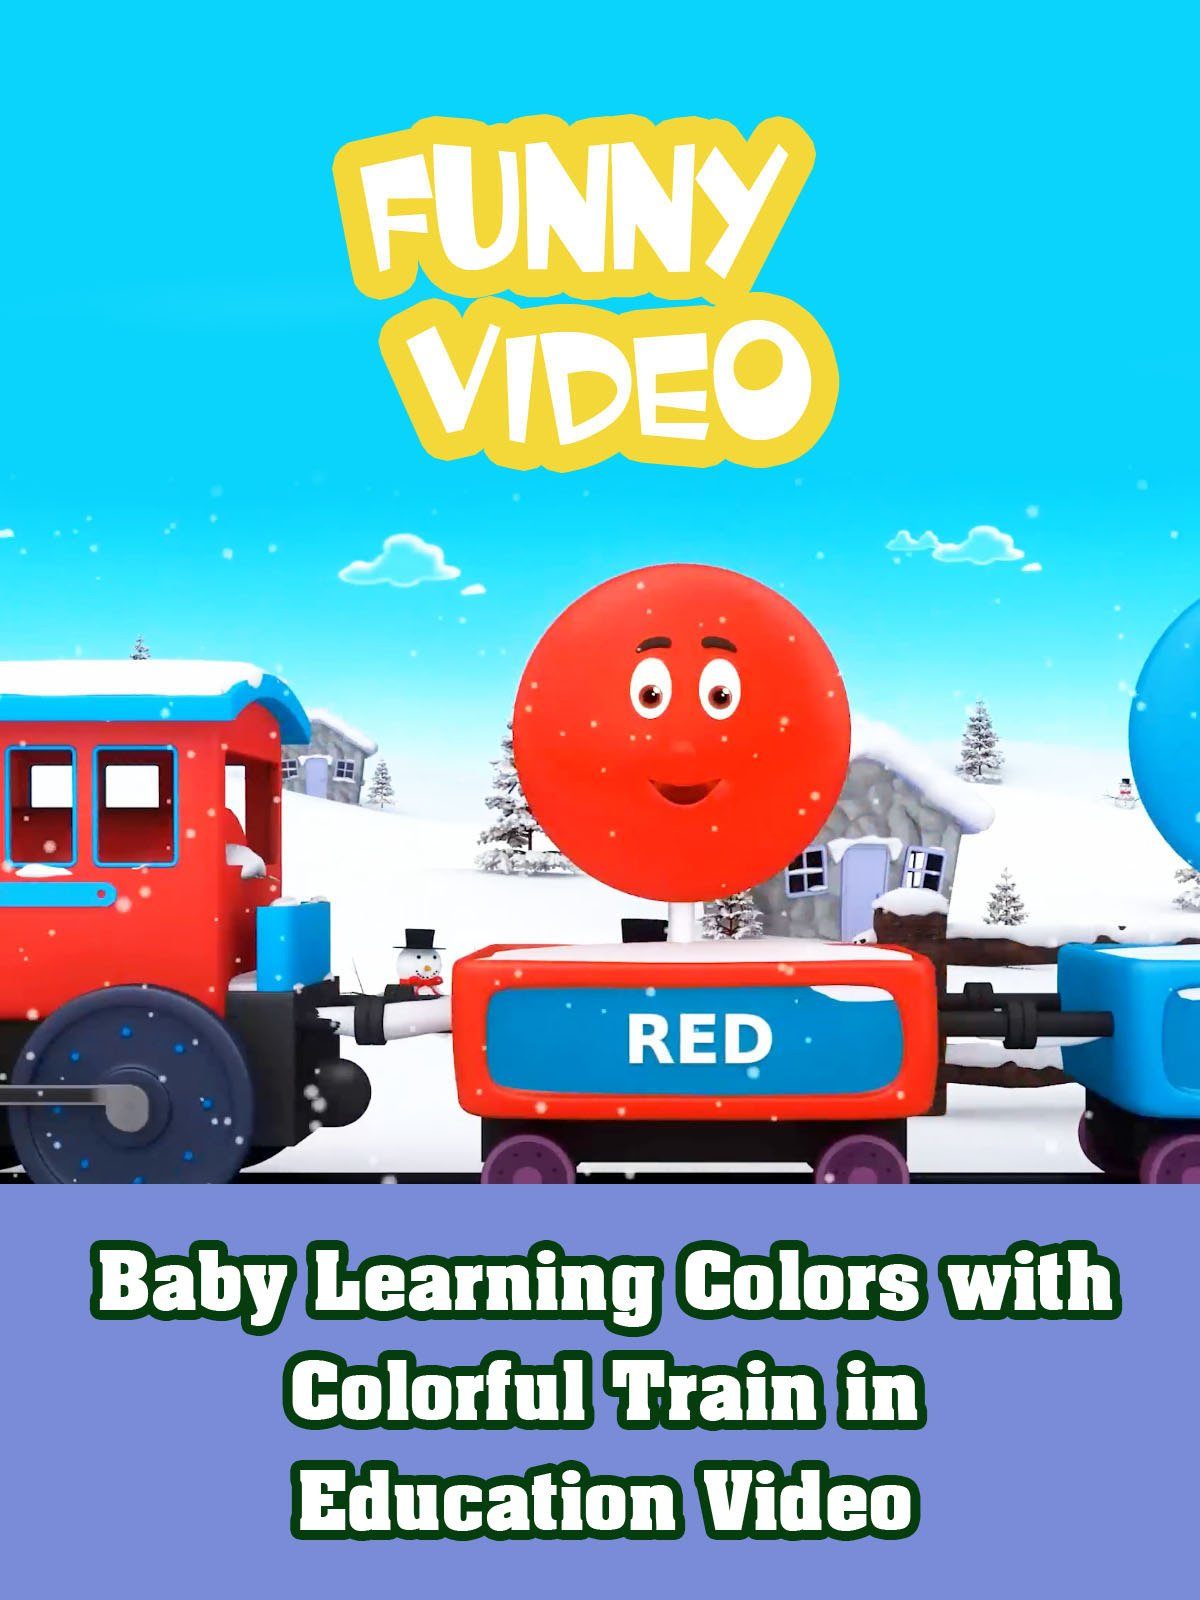 Baby Learning Colors with Colorful Train in Education Video